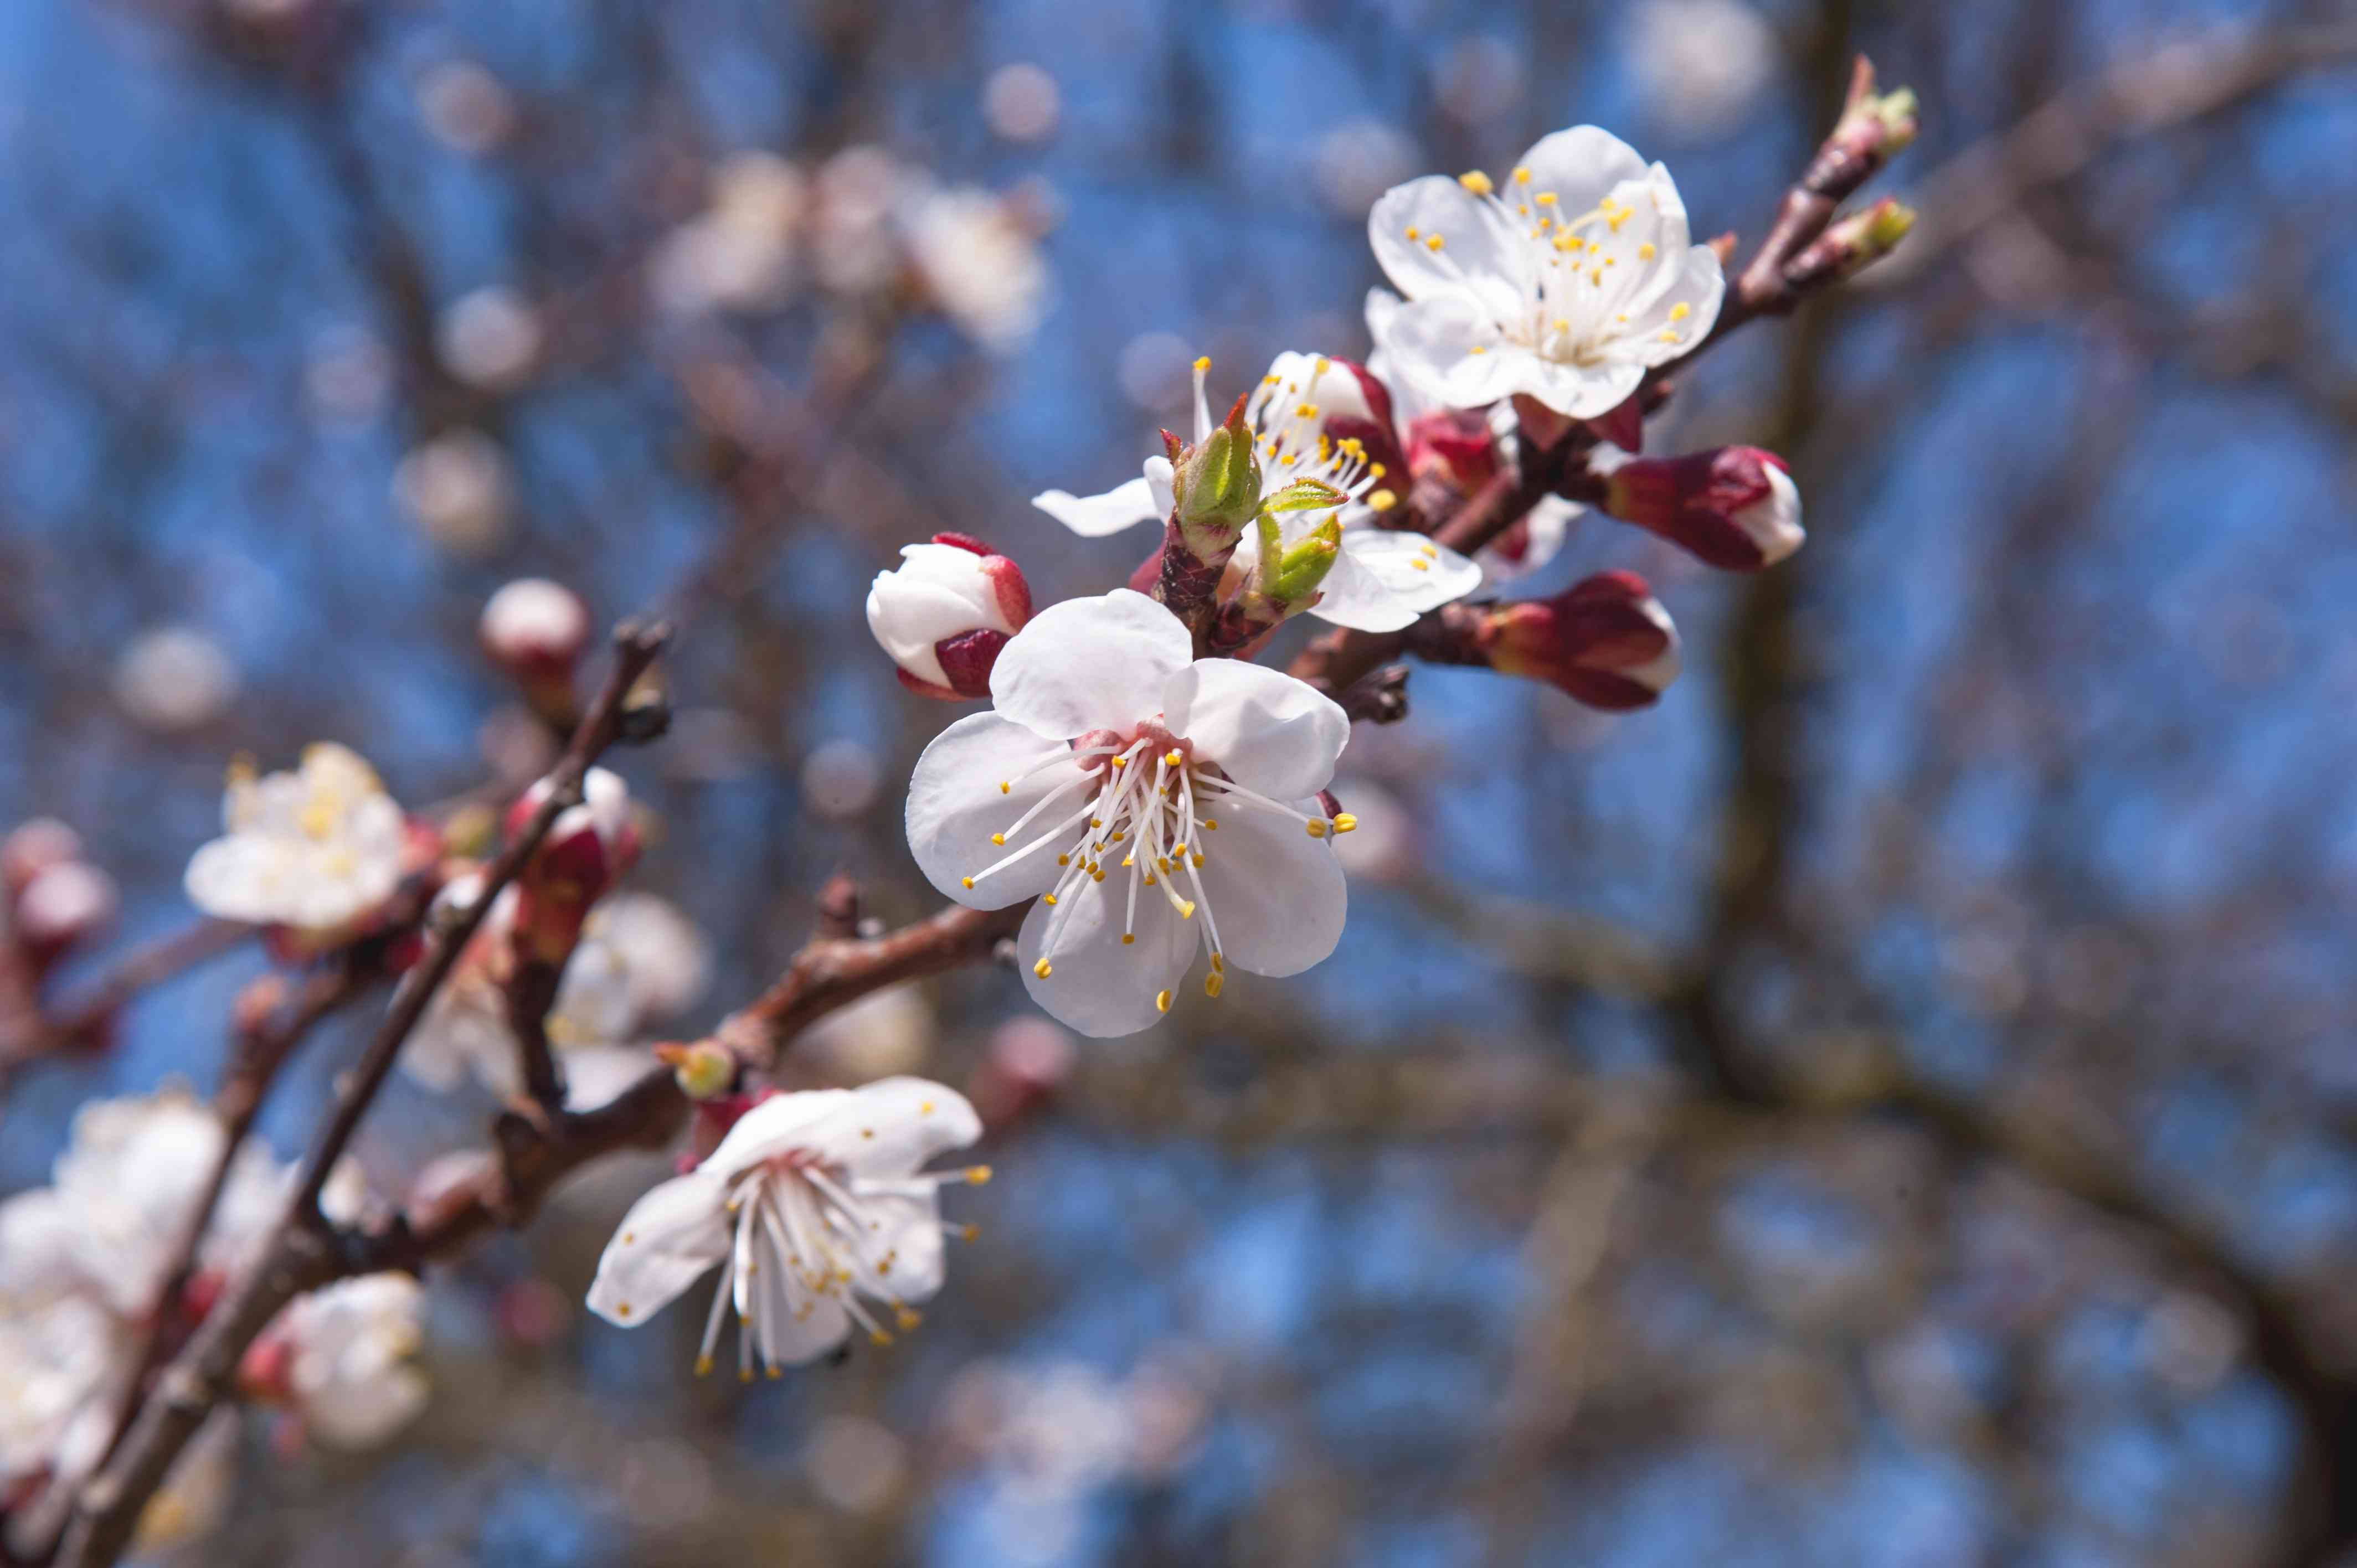 Almond tree branches with white flowers and buds in dark pink casing closeup